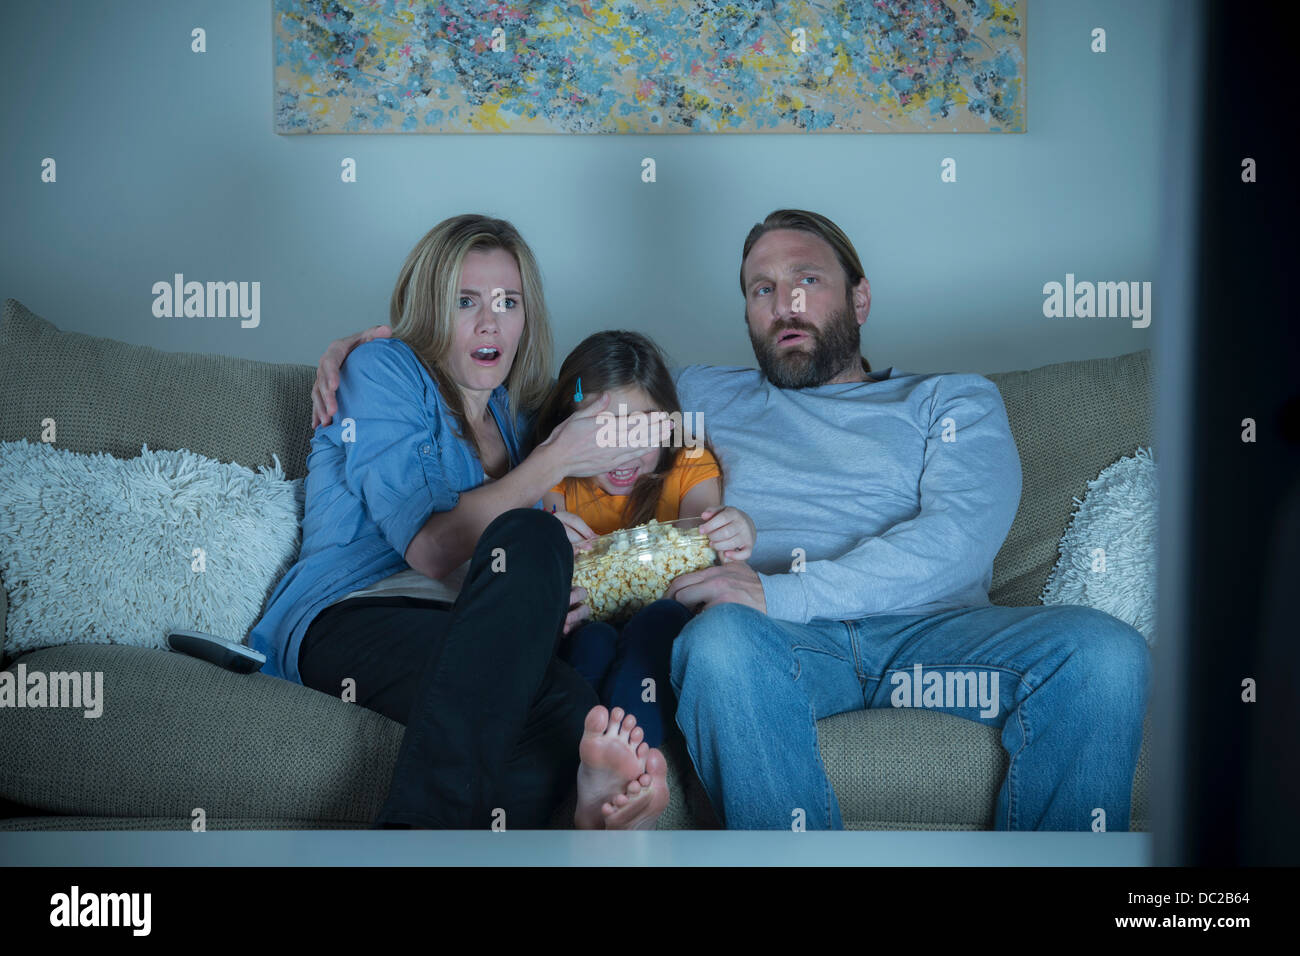 Parents and child watching horror movie - Stock Image